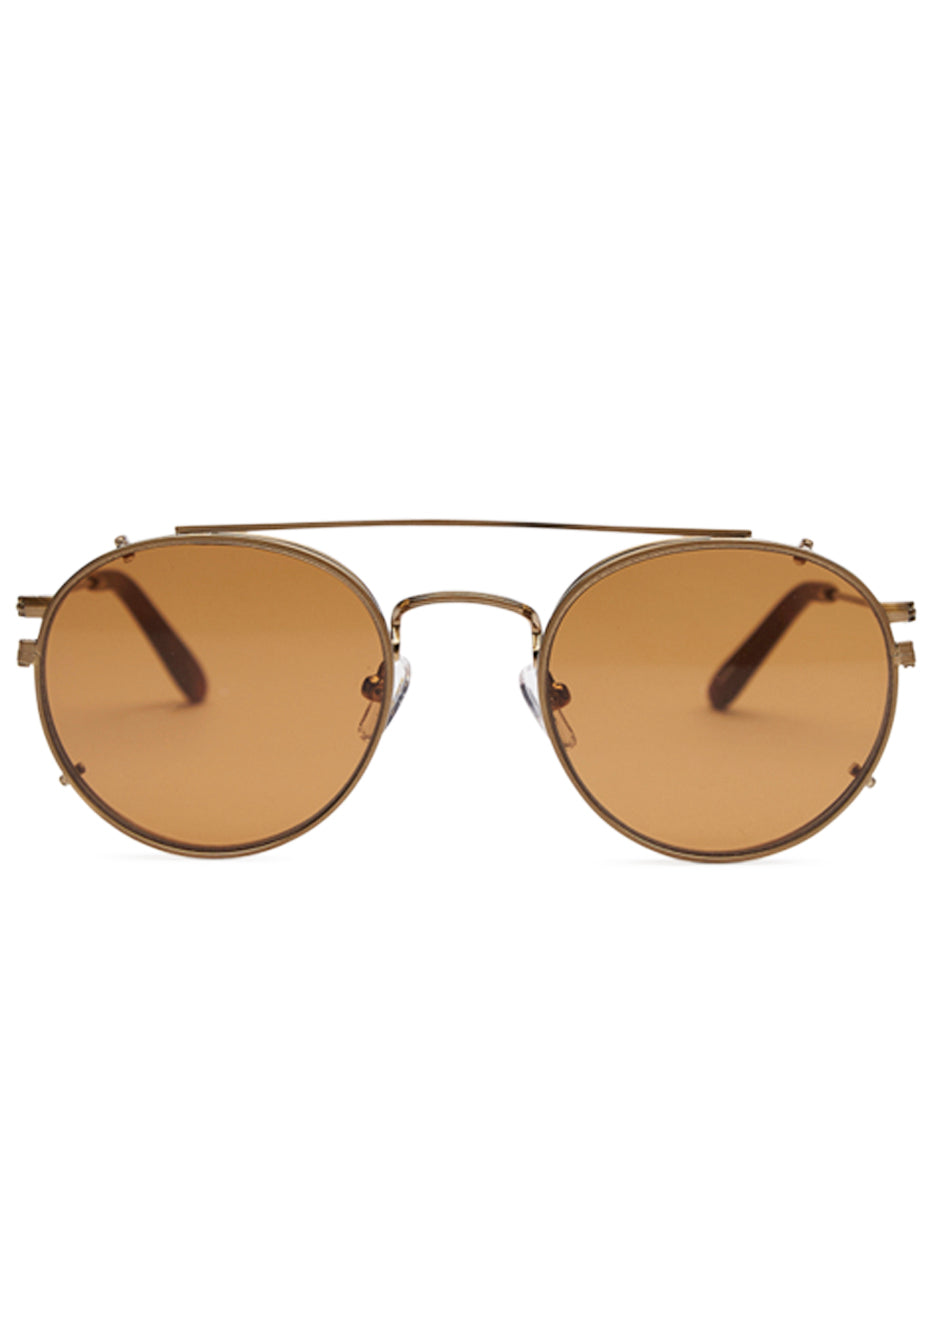 Brushed Gold Berg Sunglasses